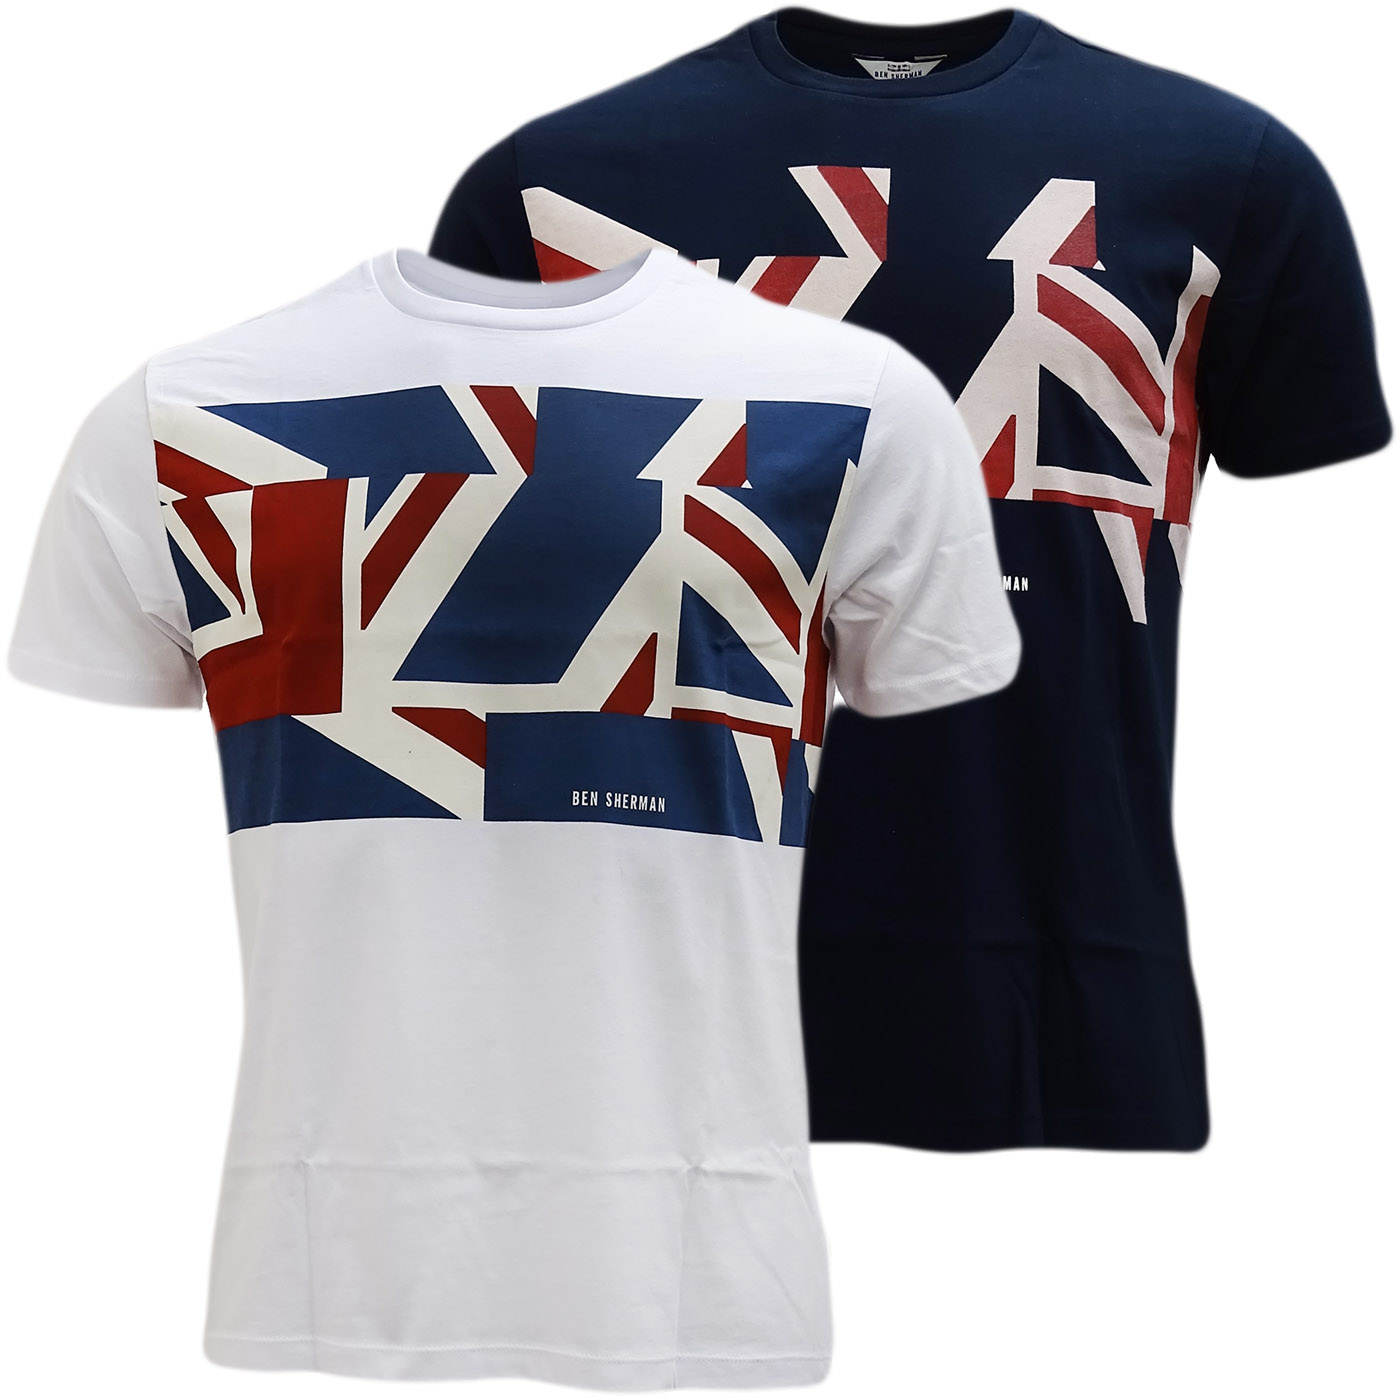 Ben Sherman Union Jack T-Shirt - Mb13460